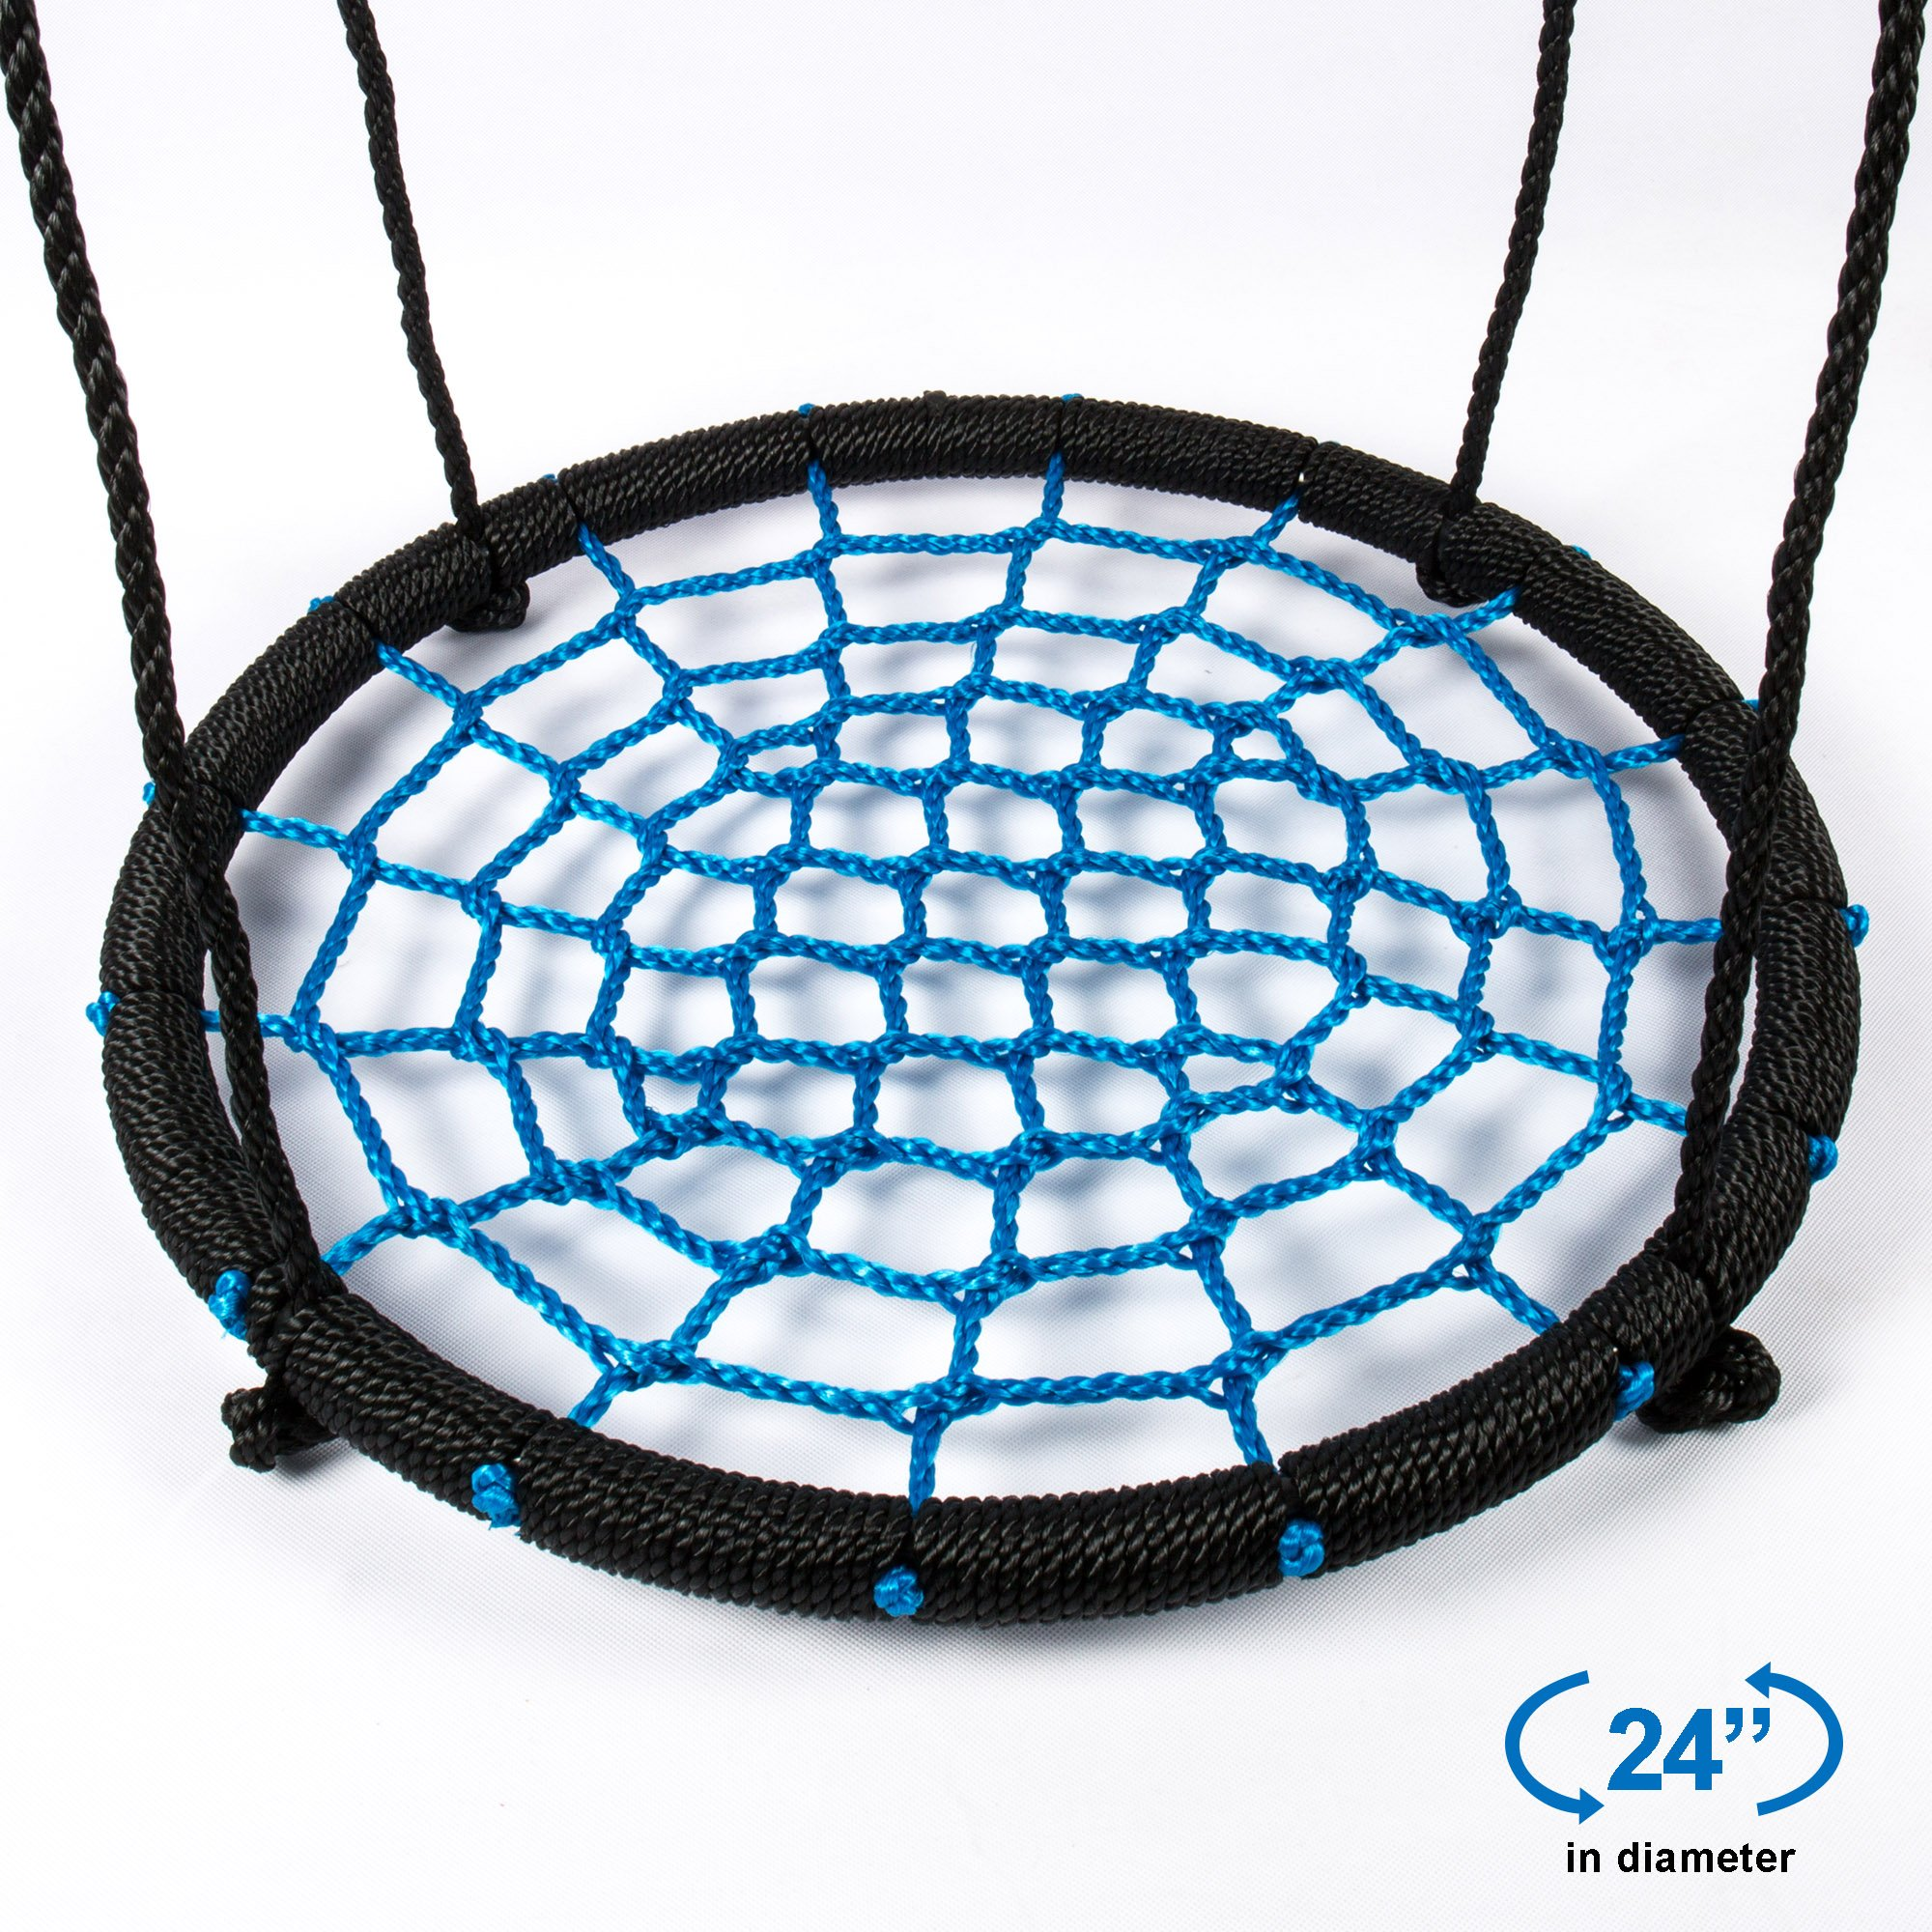 Tree Swing Spider Web - 24 Inch Diameter,220 lb Weight Capacity, Great for Playground, Tree, Outdoor Use Easy to Install and Non-Stop Fun for Kids by RESTAR (Image #7)